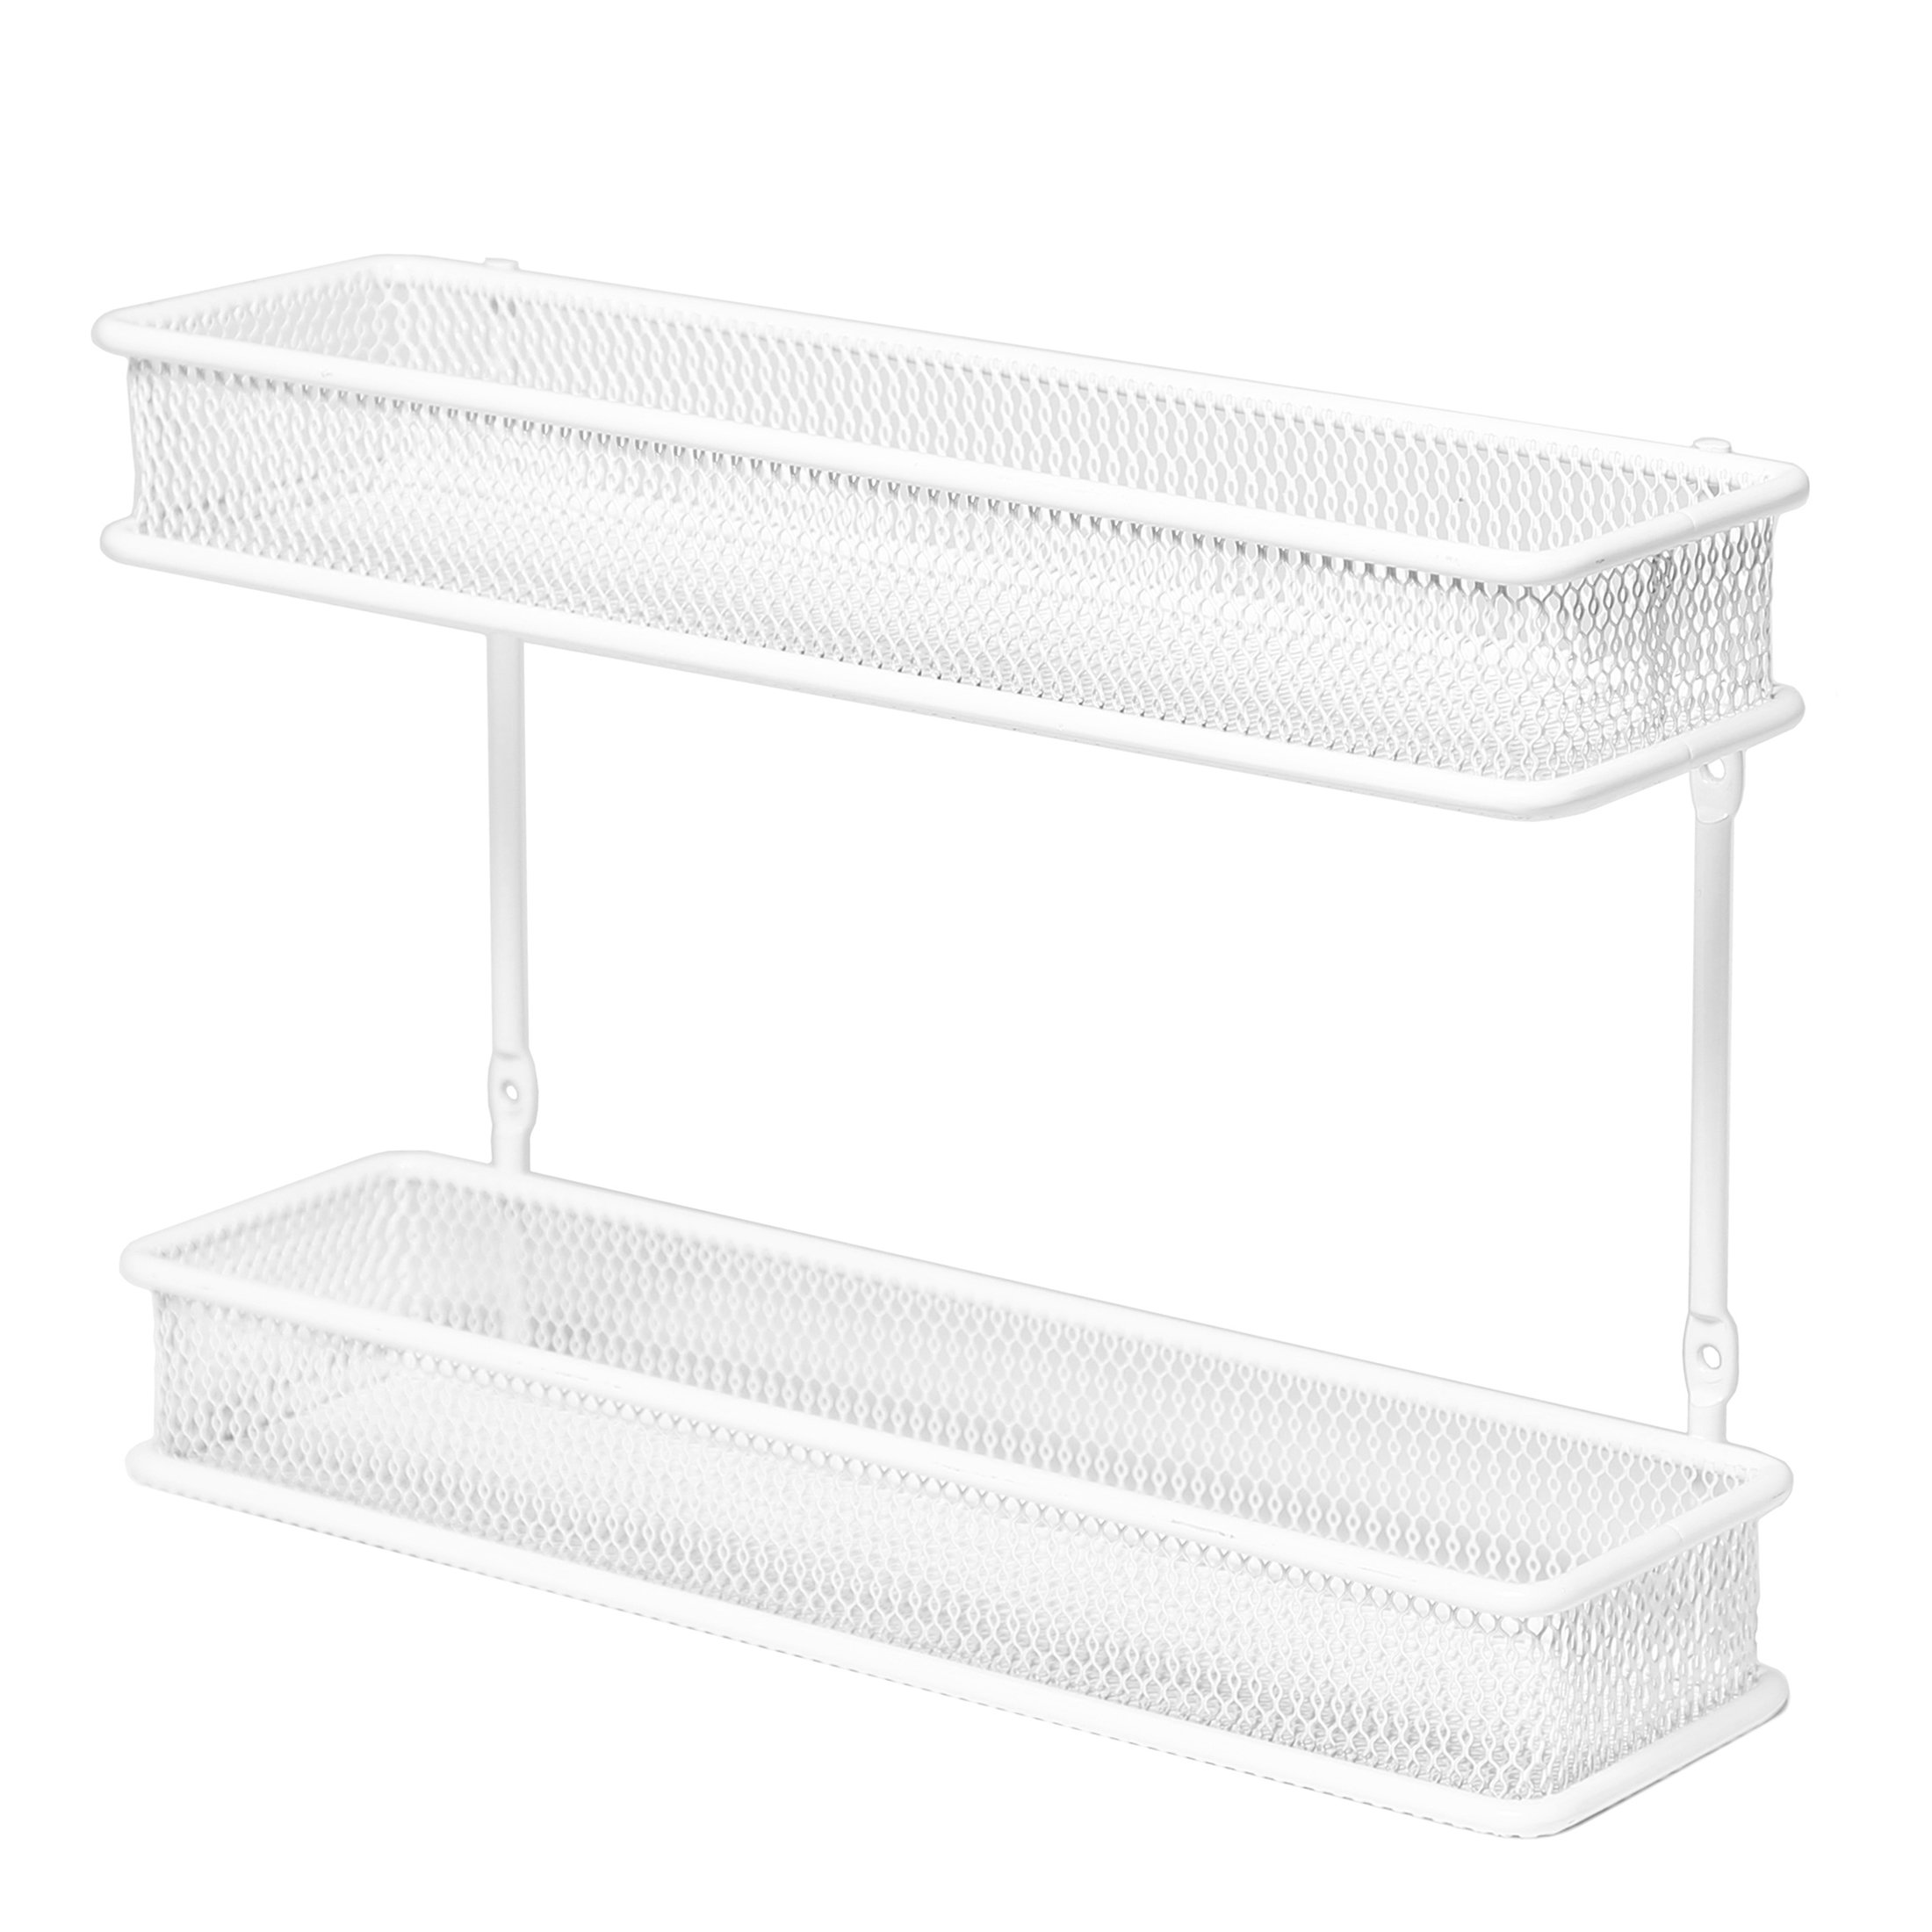 Seville Classics 2-Tier Countertop and Wall Mount Multipurpose Spice Rack Organizer, White